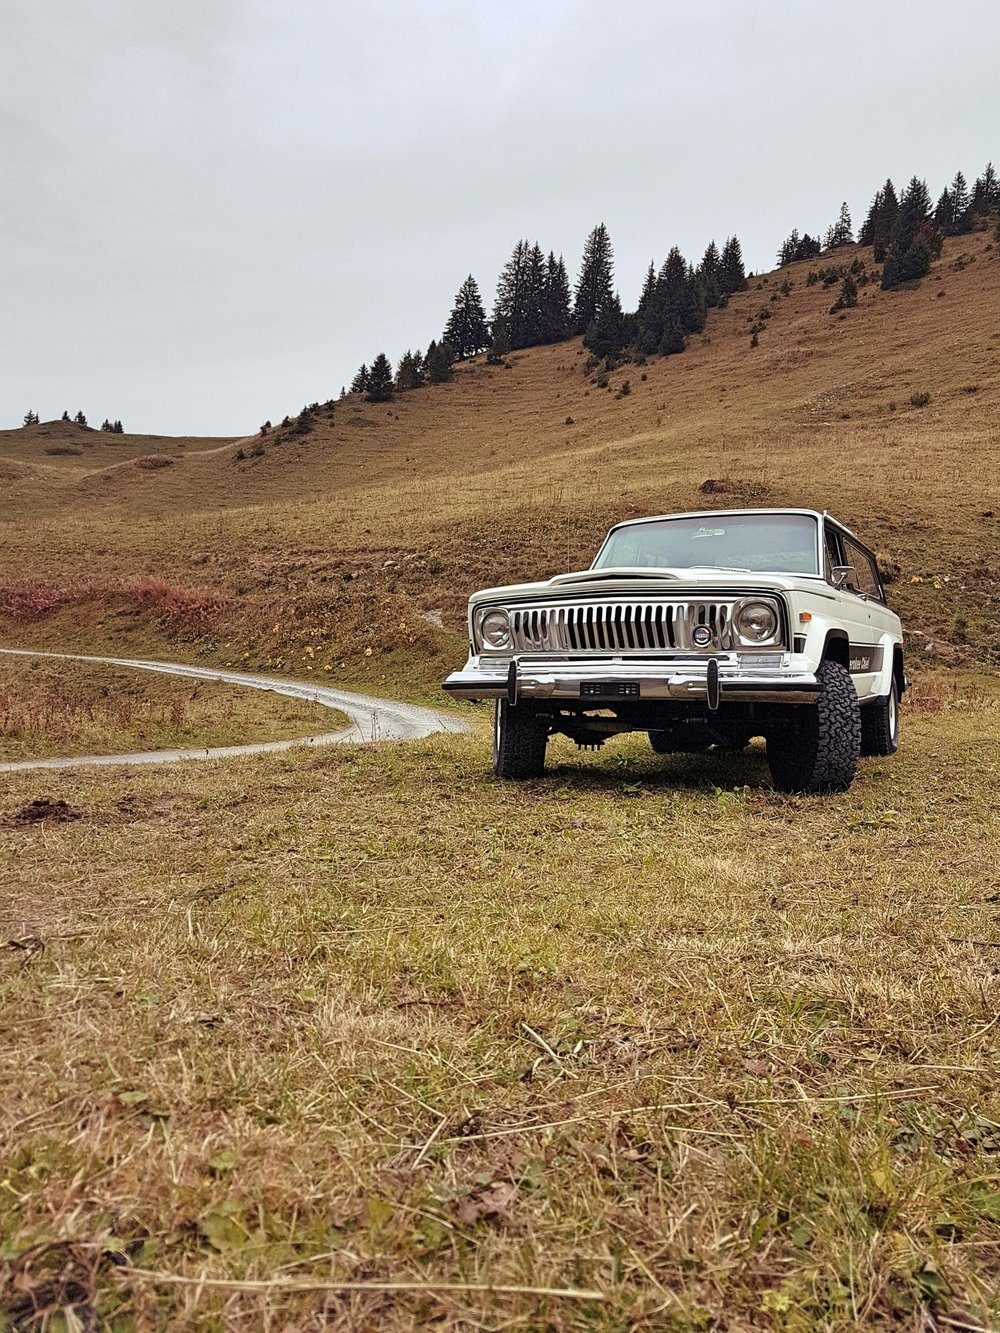 jeep-cherokee-chief-1978-shooting-morgins-switzerland-36.jpg